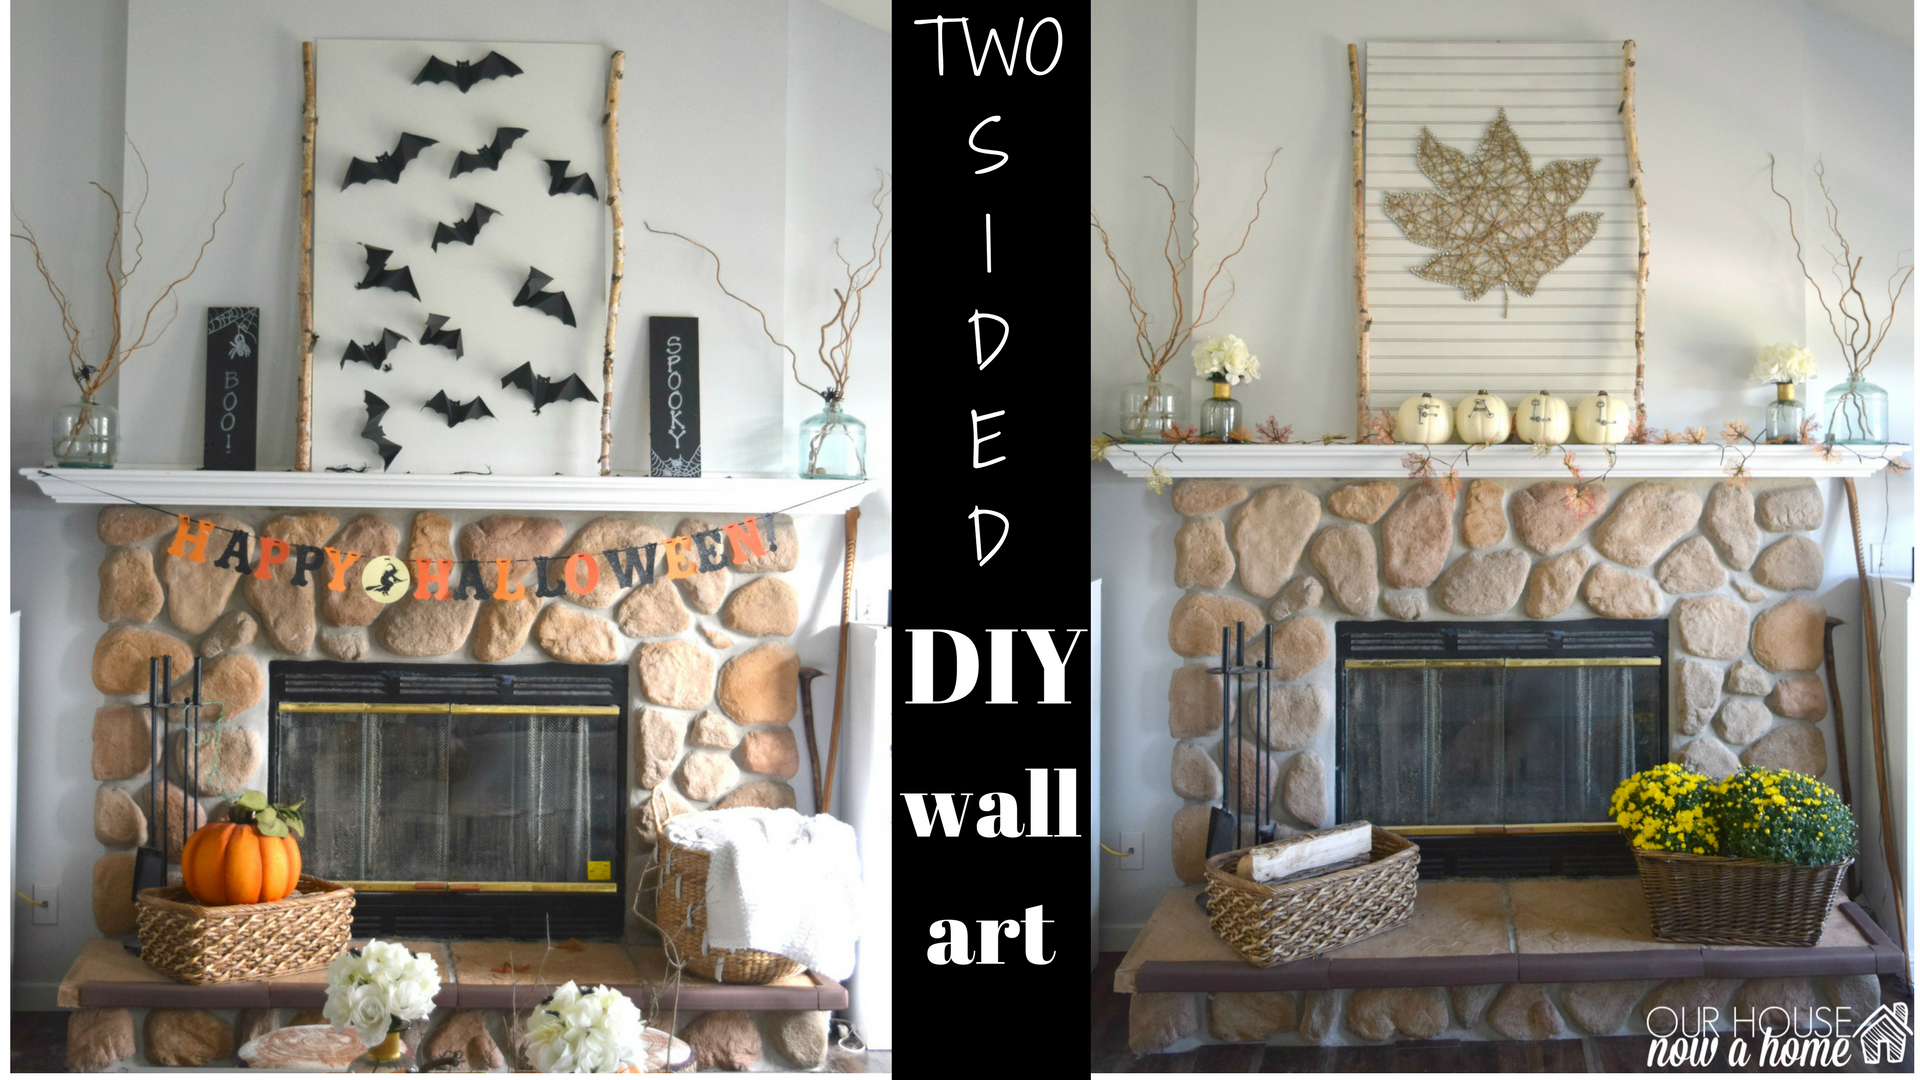 Leaf String And Bat Wall Art A Two For One Fall Decor With This Sided Idea Easy To Create Set Up Enjoy Then Put In Storage Diy